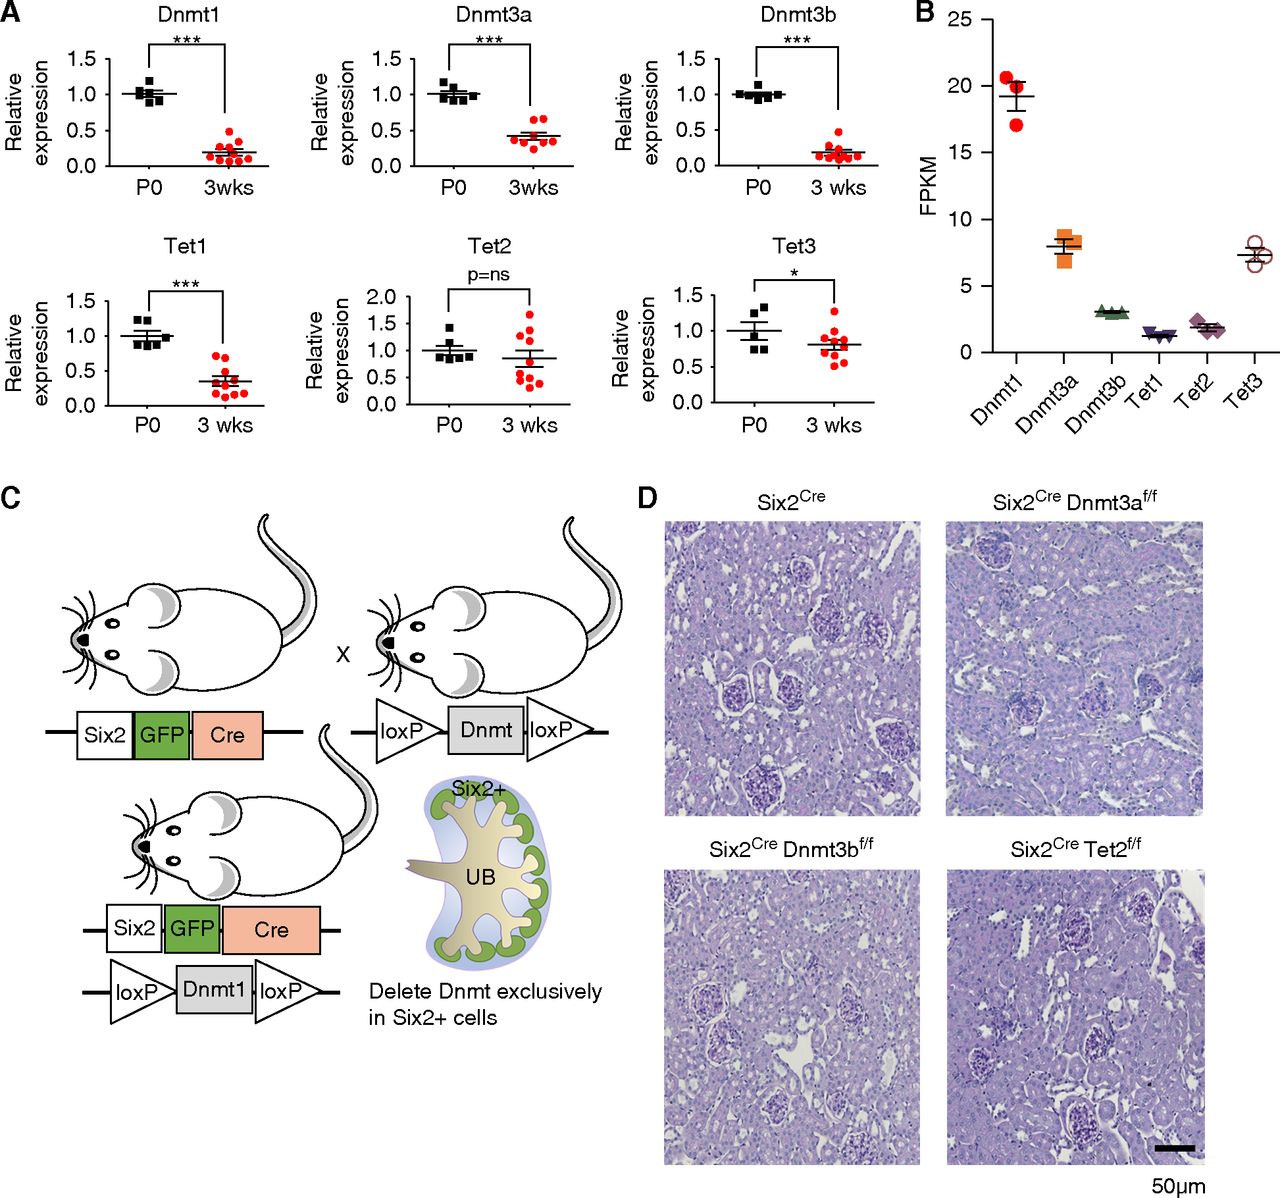 DNMT1 in Six2 Progenitor Cells Is Essential for Transposable